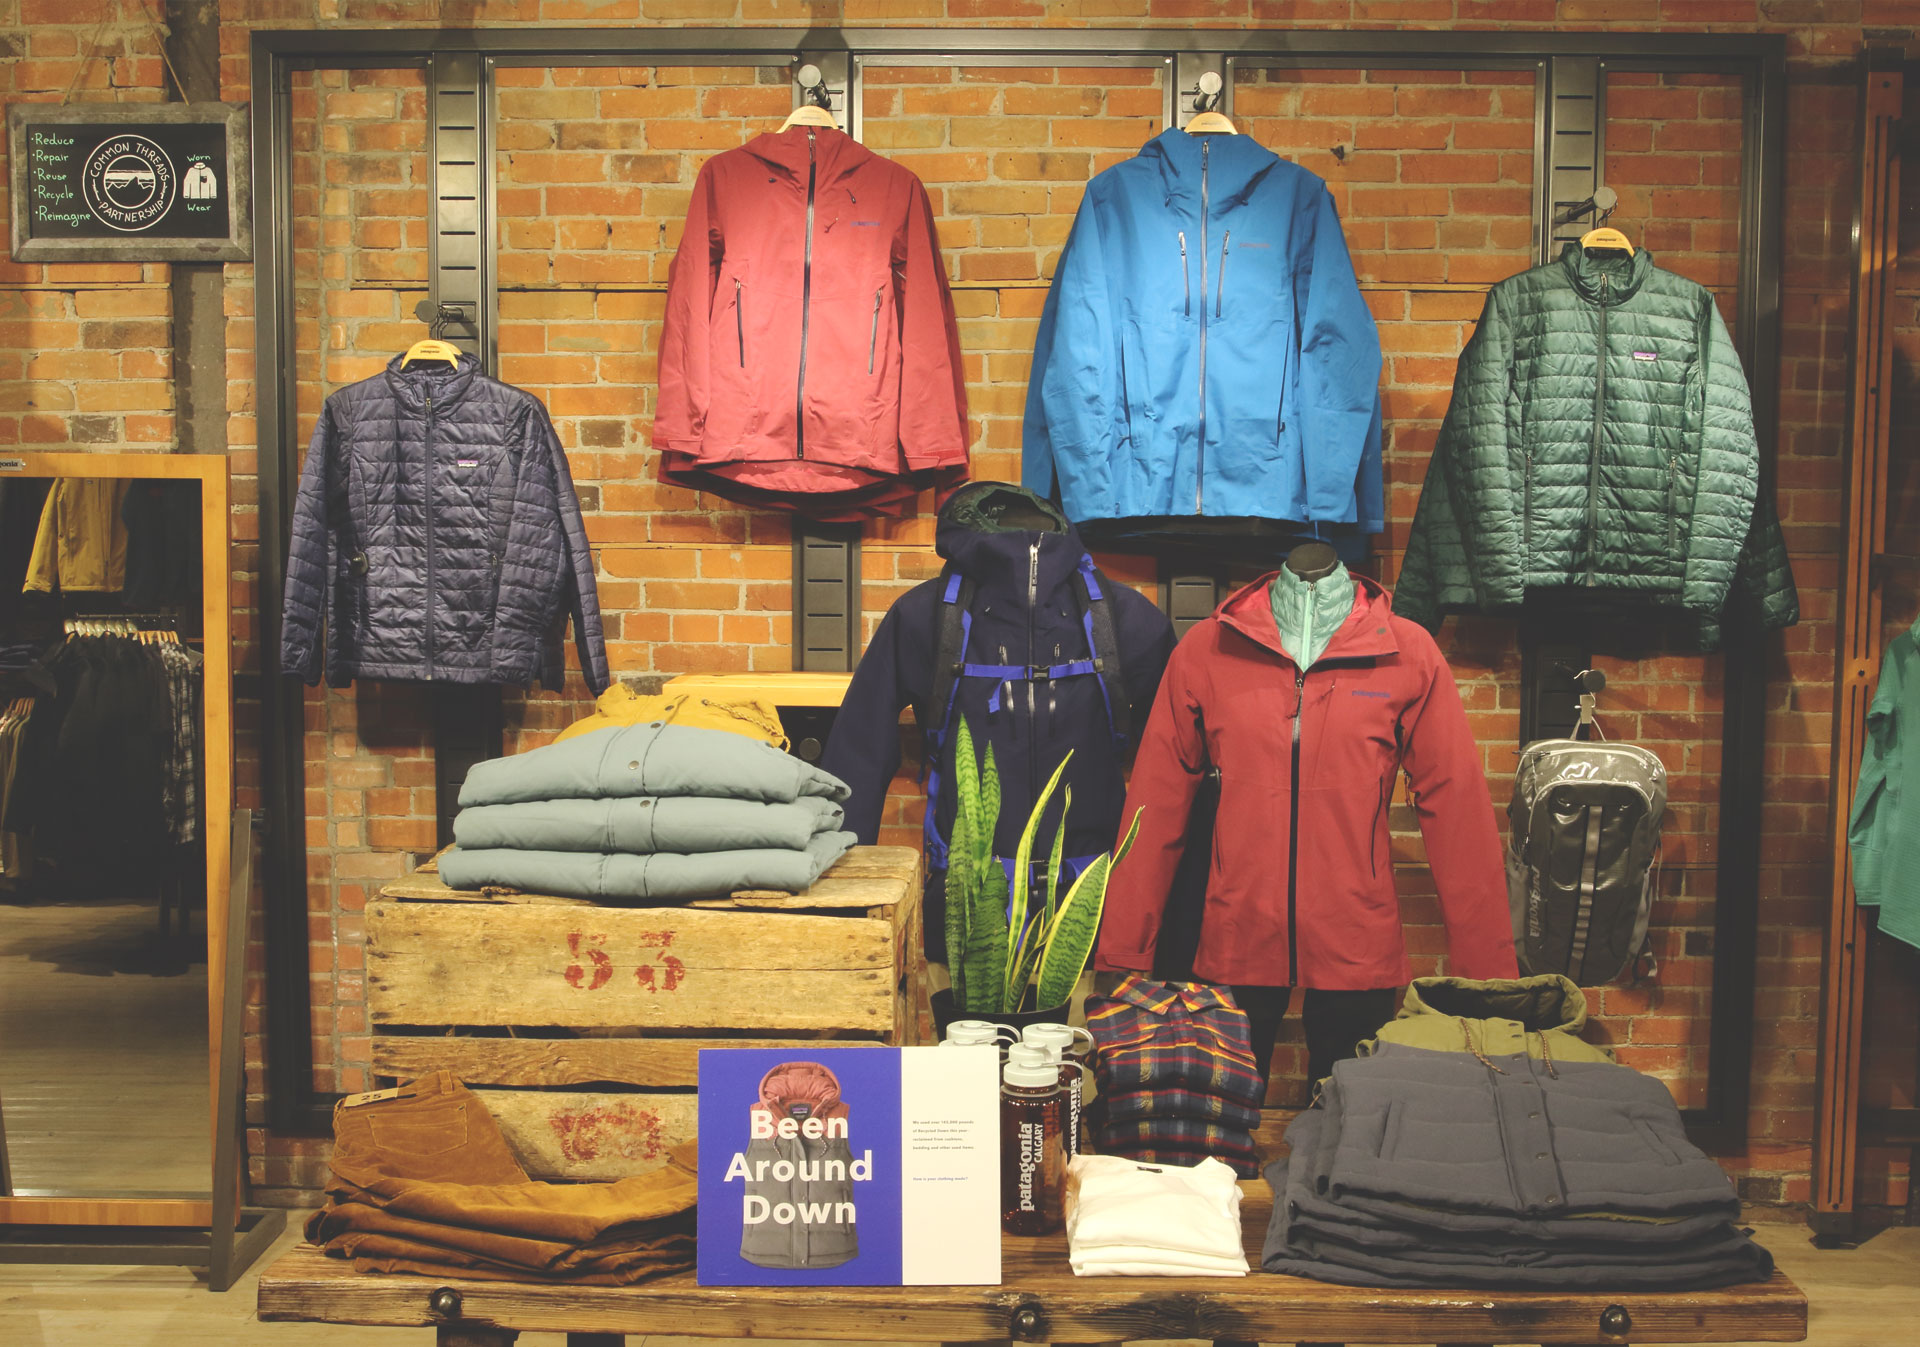 Gear up at Patagonia Calgary on 17th Avenue.